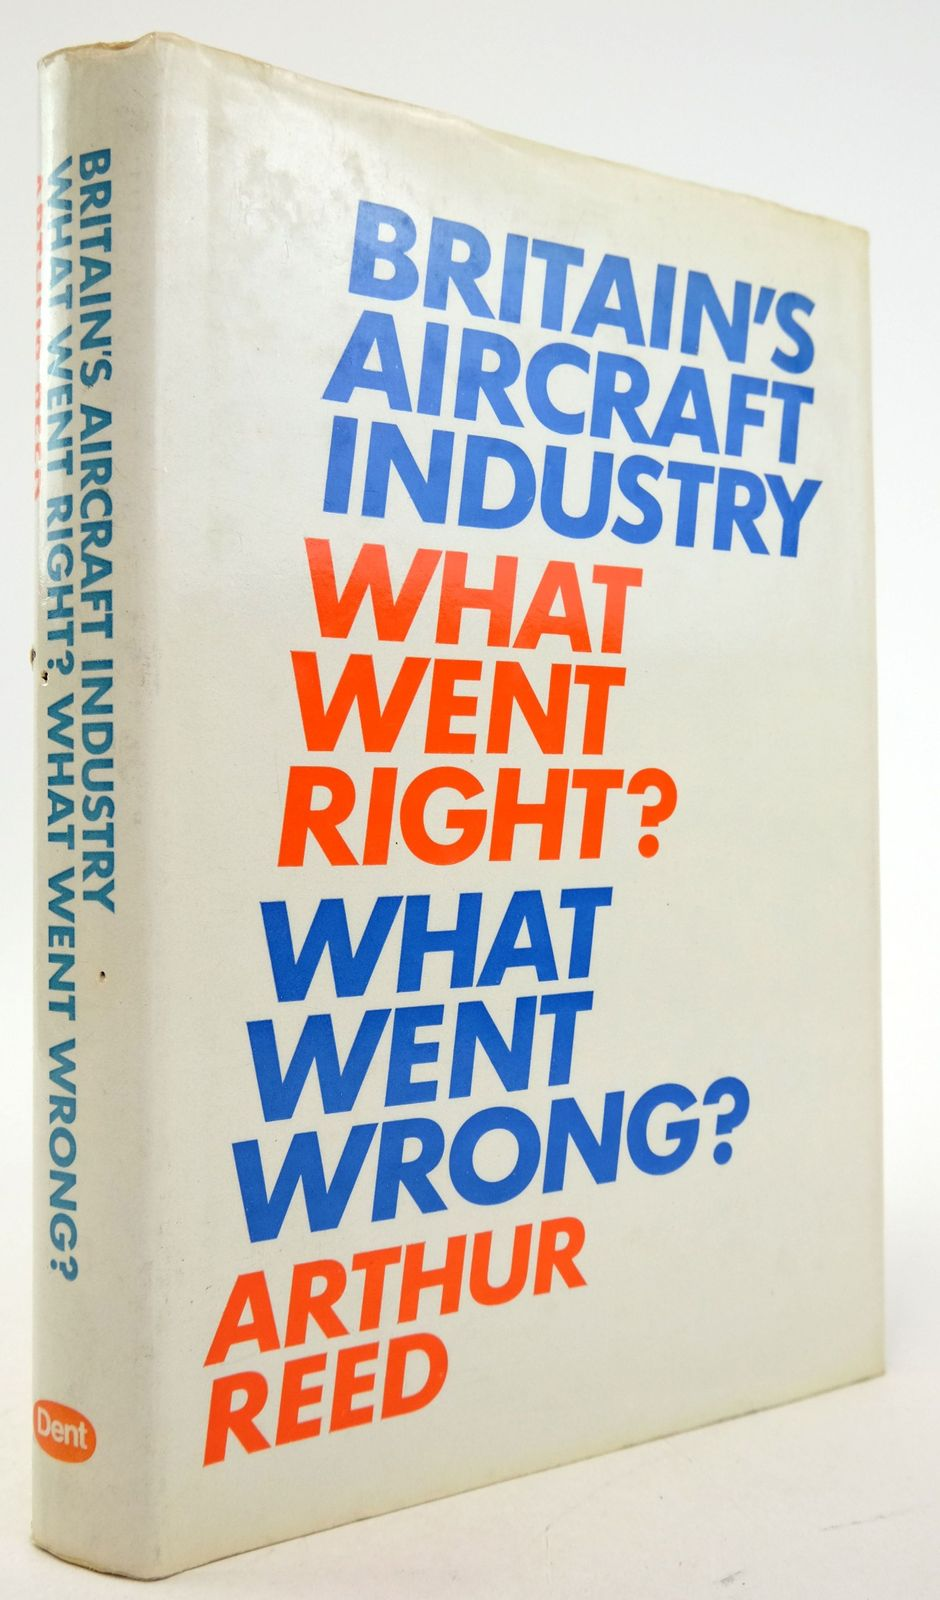 Photo of BRITAIN'S AIRCRAFT INDUSTRY: WHAT WENT RIGHT? WHAT WENT WRONG? written by Reed, Arthur published by J.M. Dent & Sons Ltd. (STOCK CODE: 1819886)  for sale by Stella & Rose's Books